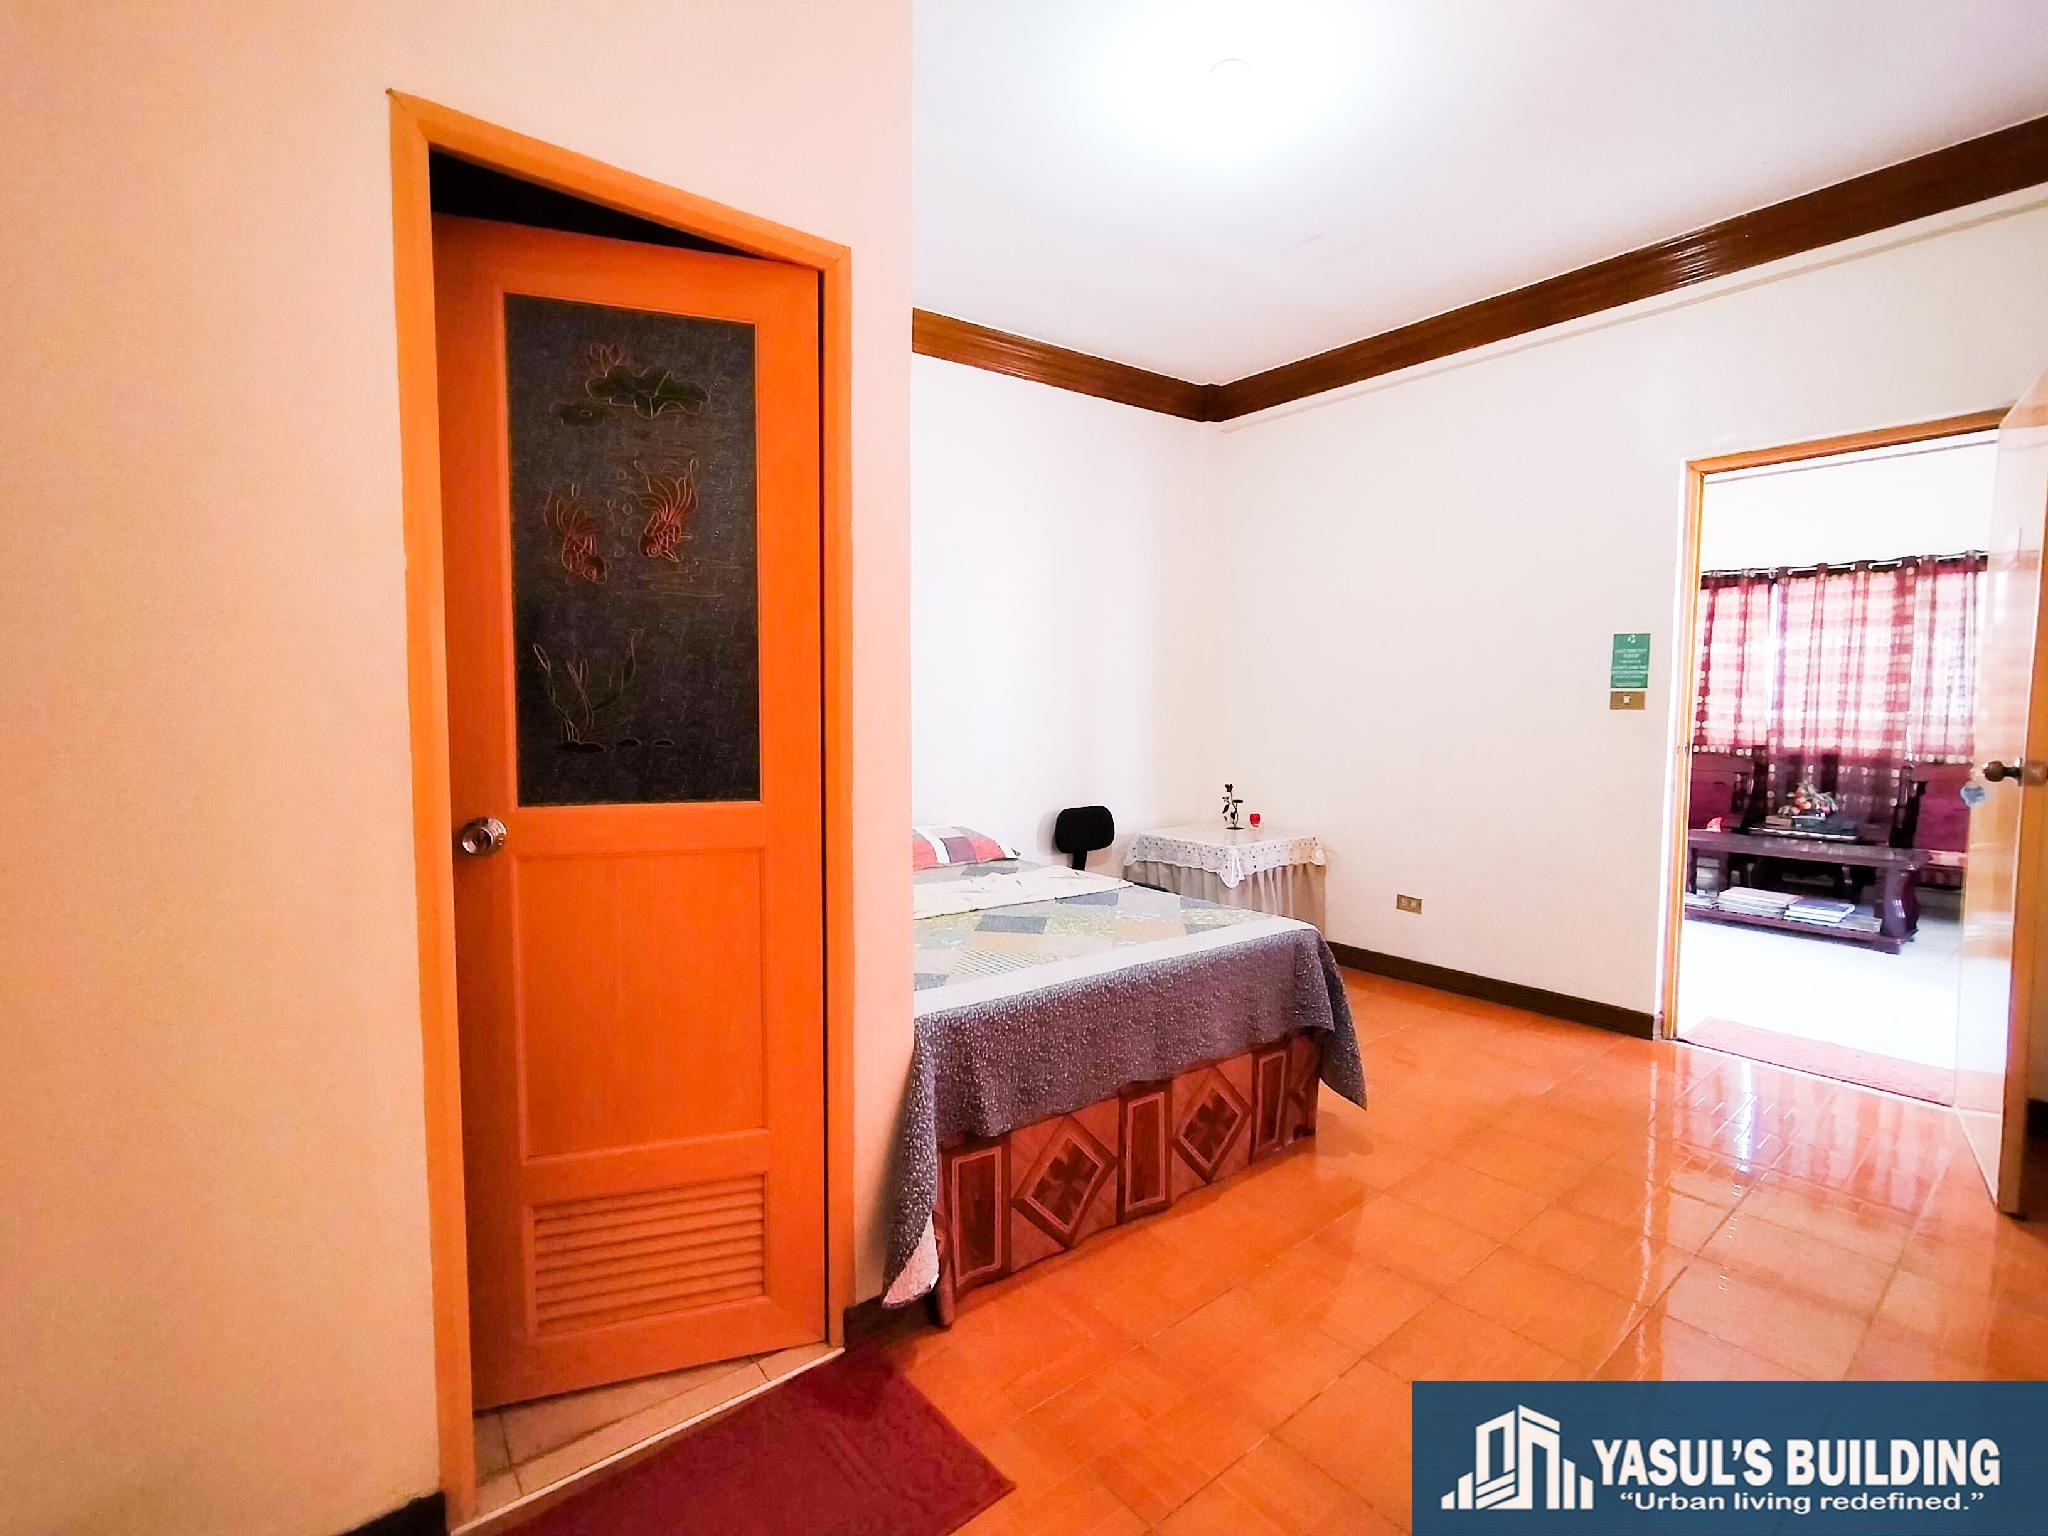 ROOM1 8 HOURS ROOM STAY IN KALIBO